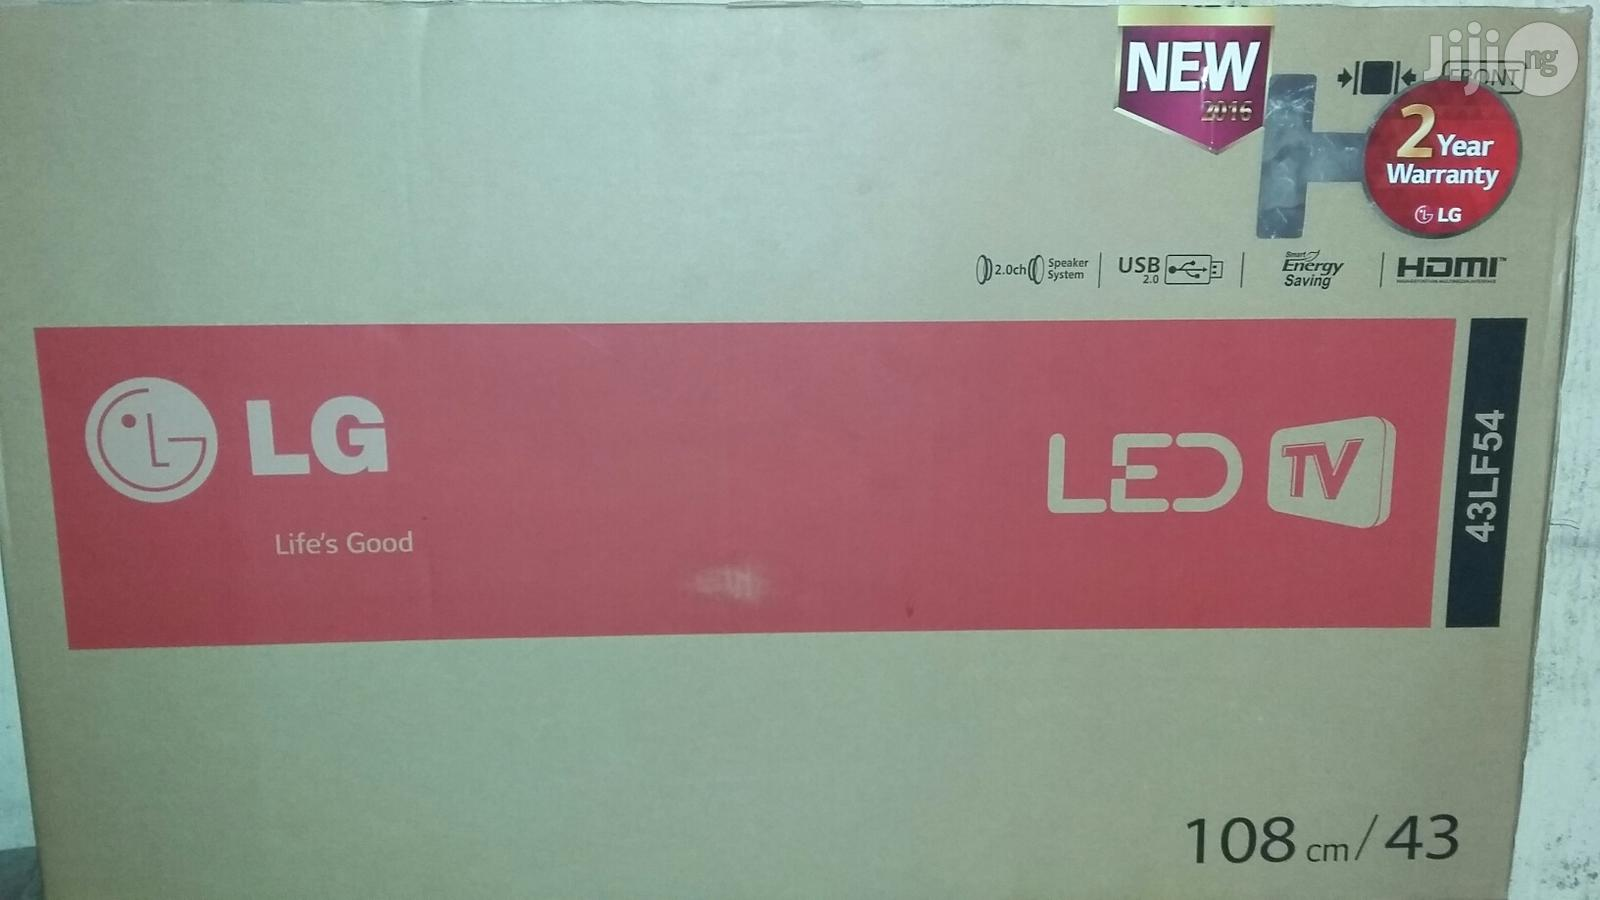 Brand New LG Led Tv 43 Inches With 2years Warranty And Safe Dilivery